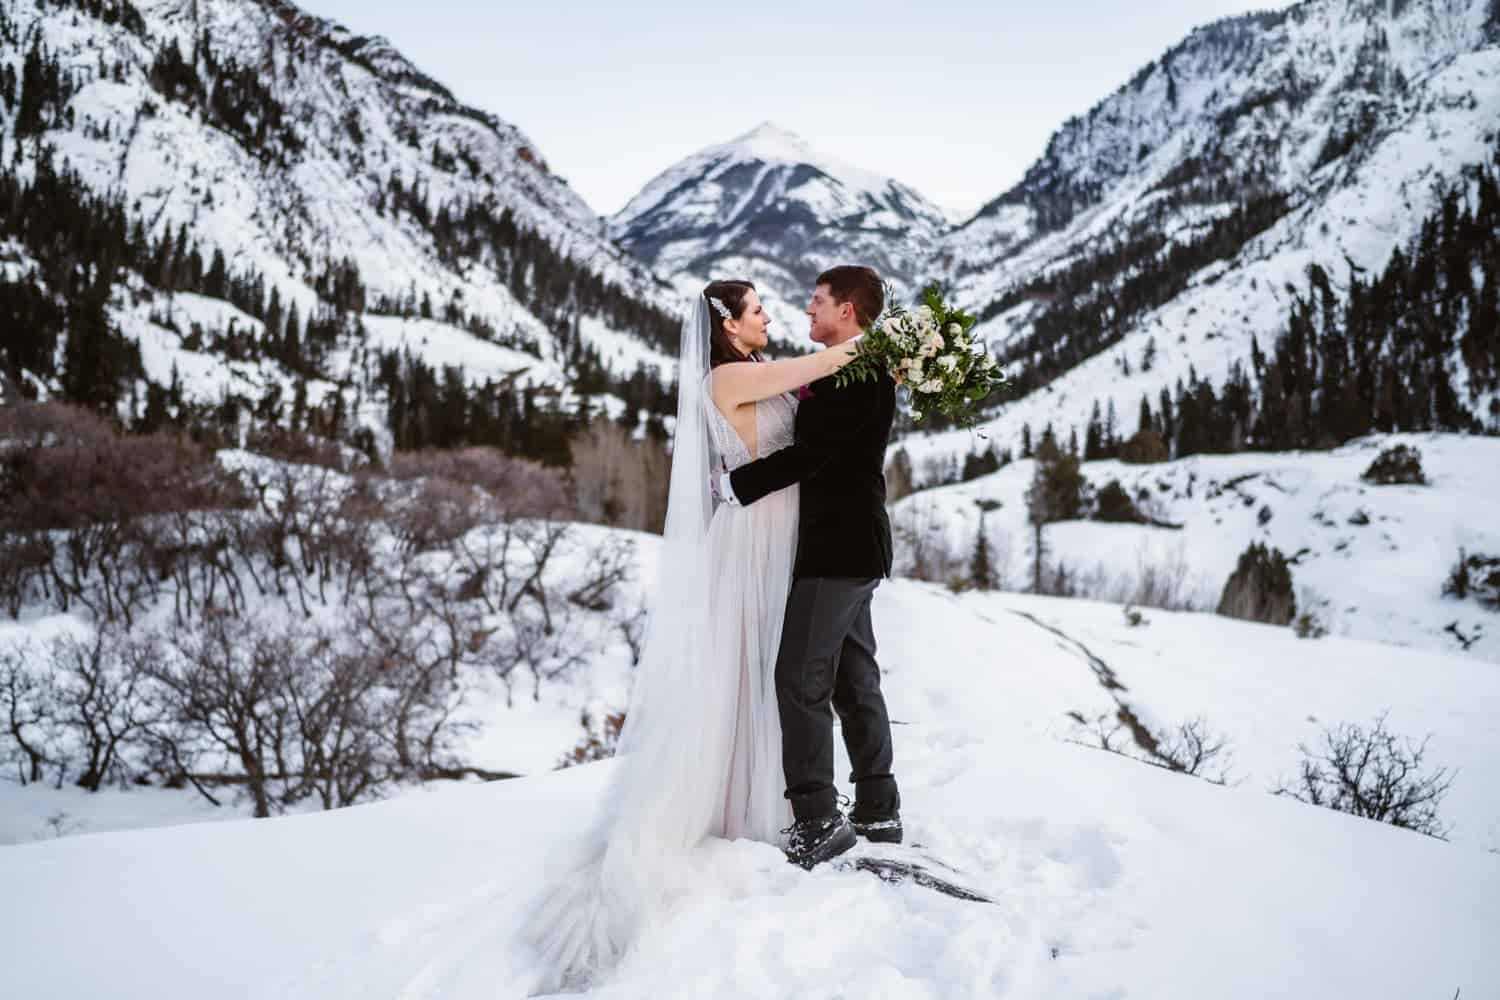 Bride and Groom Hugging in Snow Best Places to Elope in Colorado